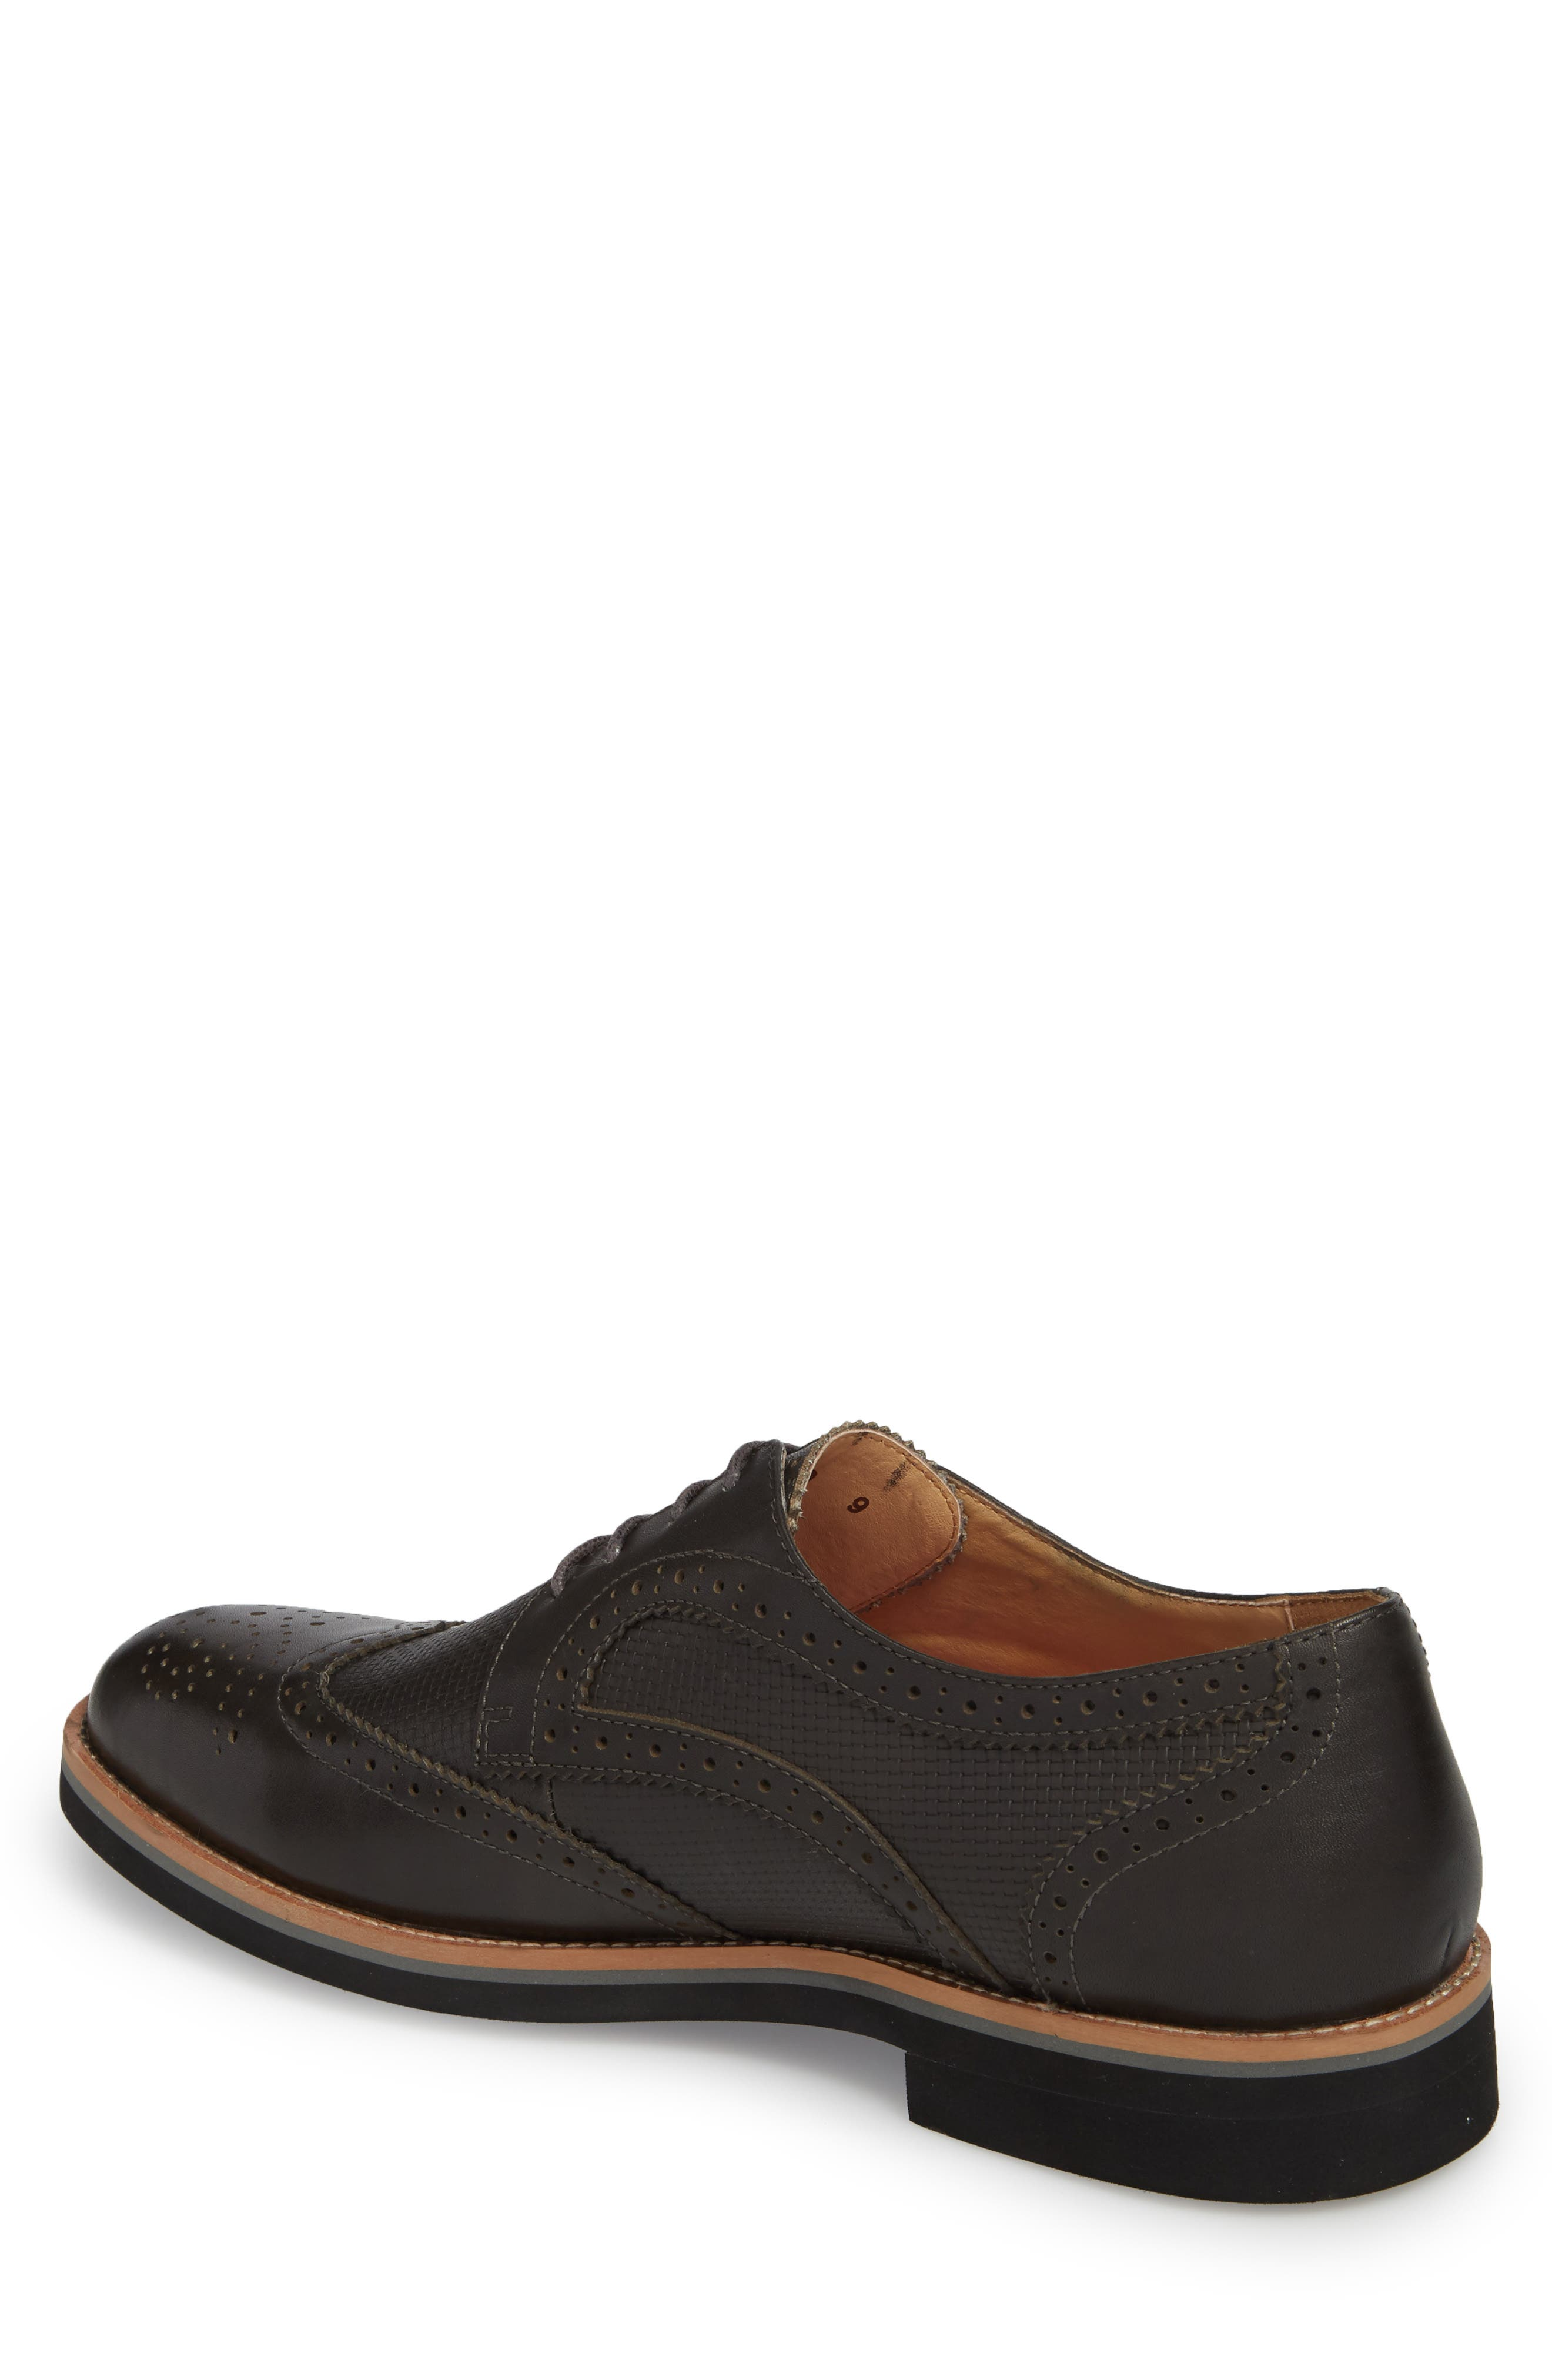 English Laundry Men's Cleave Embossed Wingtip mrrgasYzl